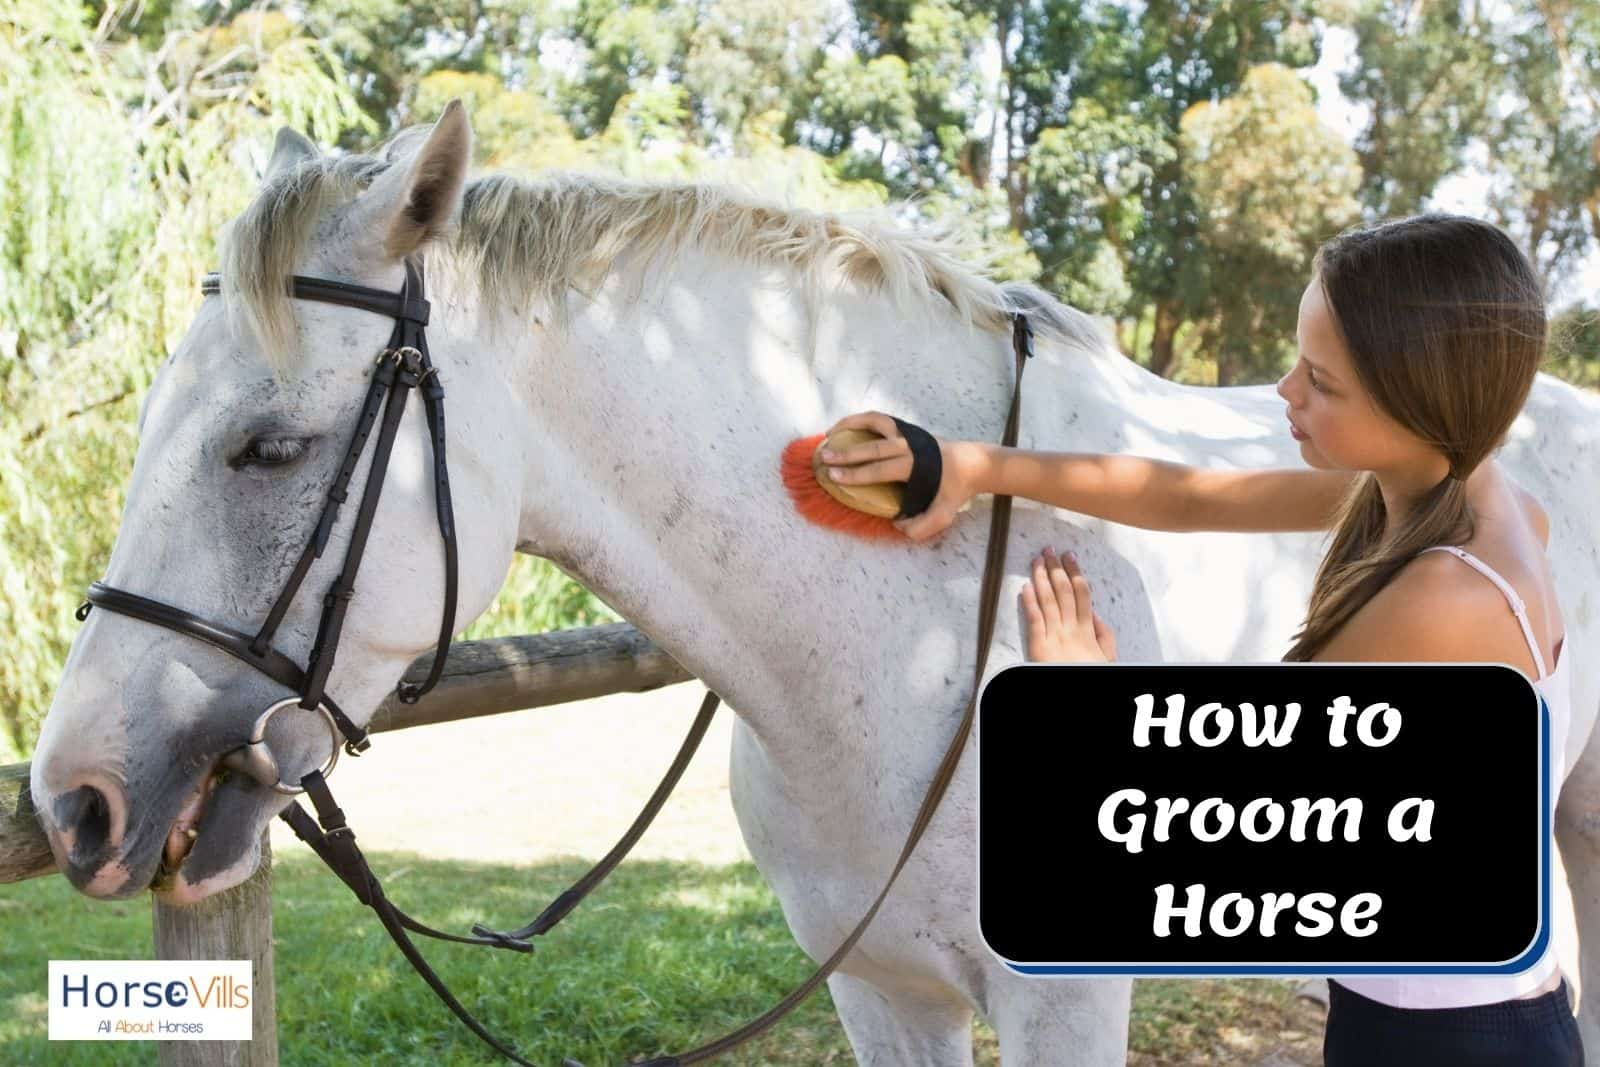 a lady showing how to groom a horse